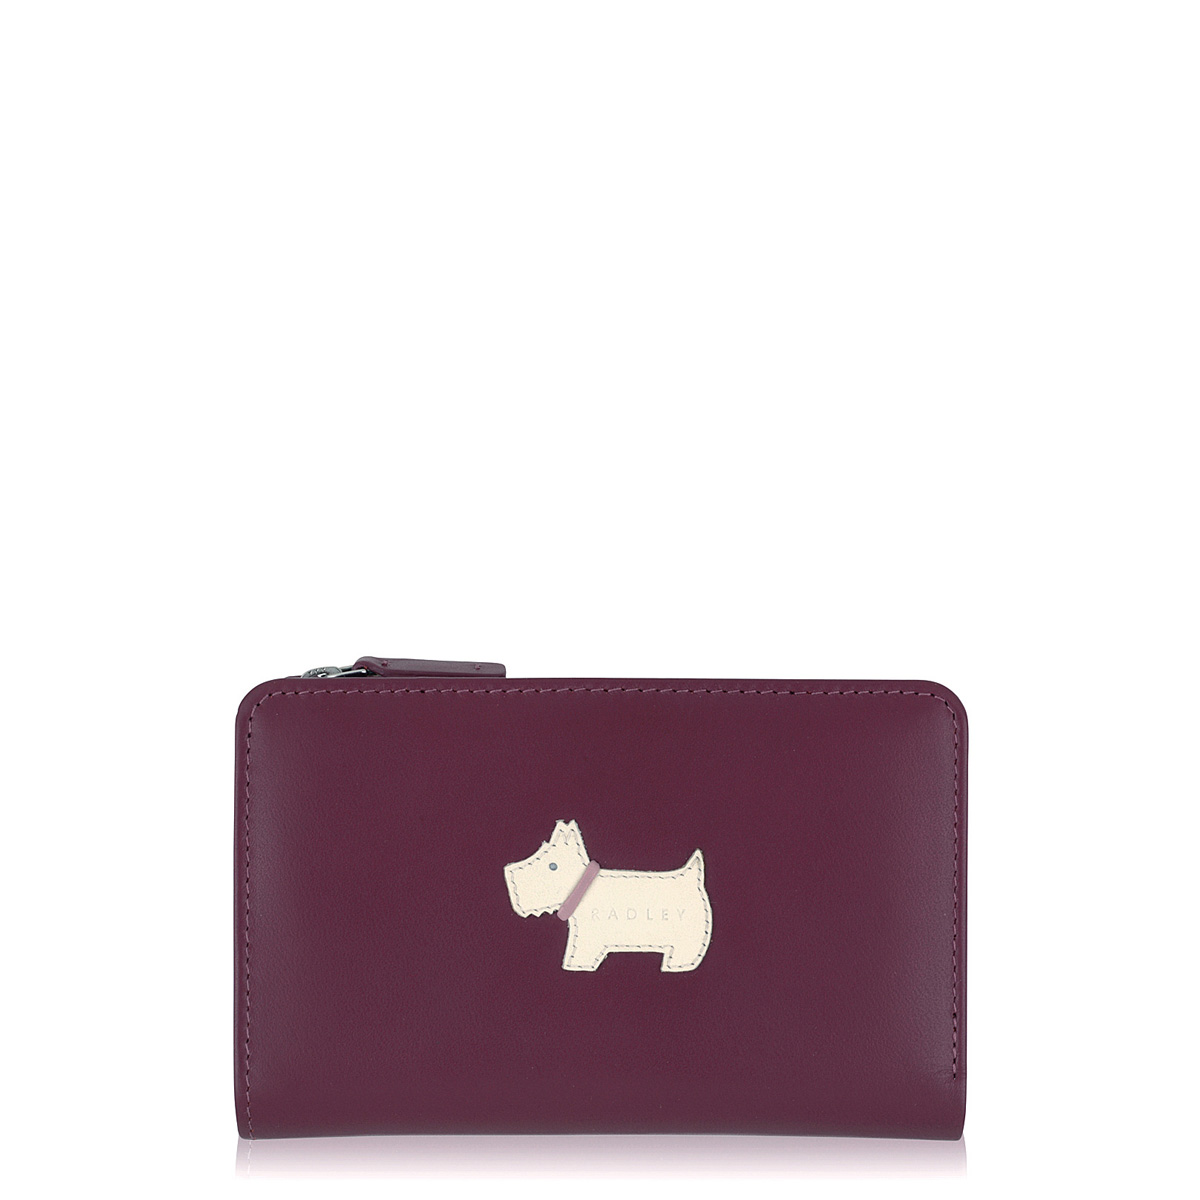 Radley Heritage Dog Flap over Purse, Burgundy